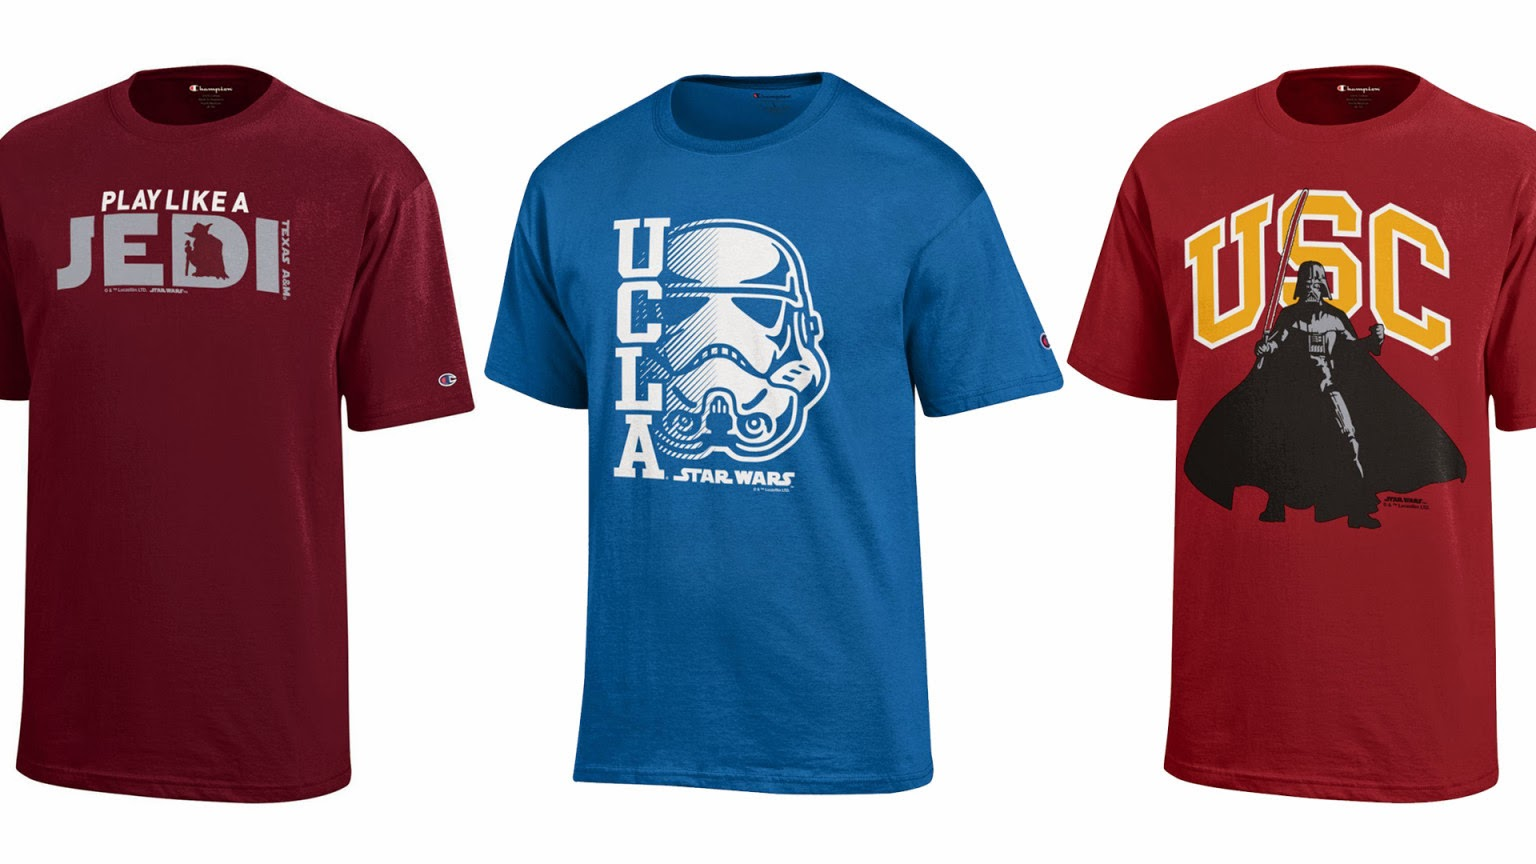 Star Wars enters the galaxy of college sports apparel.